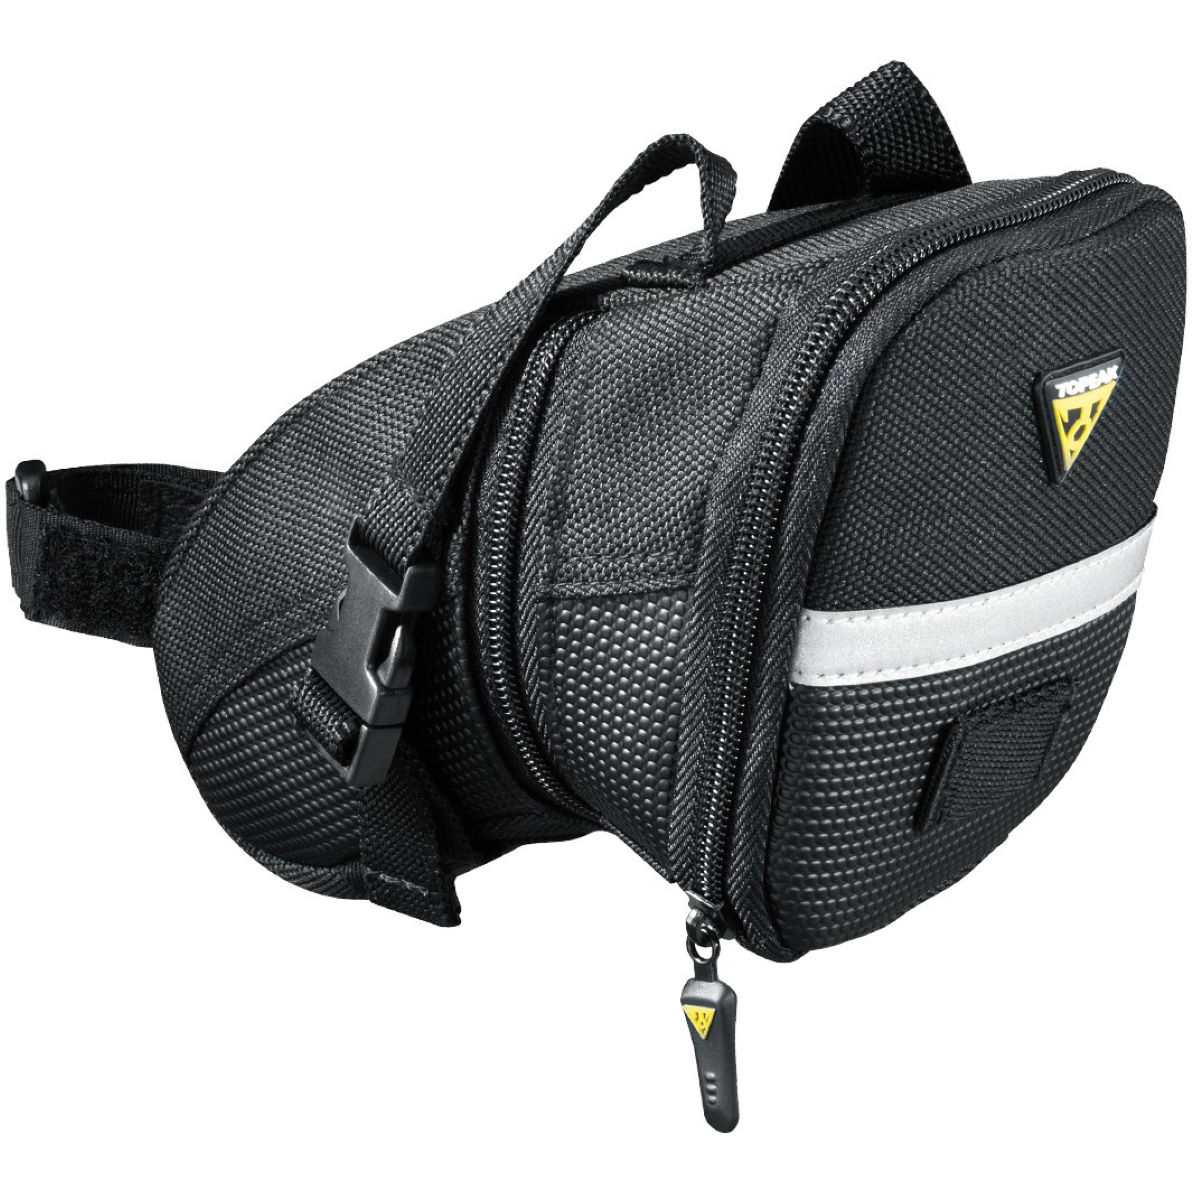 Topeak Aero Wedge (Buckle) Medium Saddle Bag